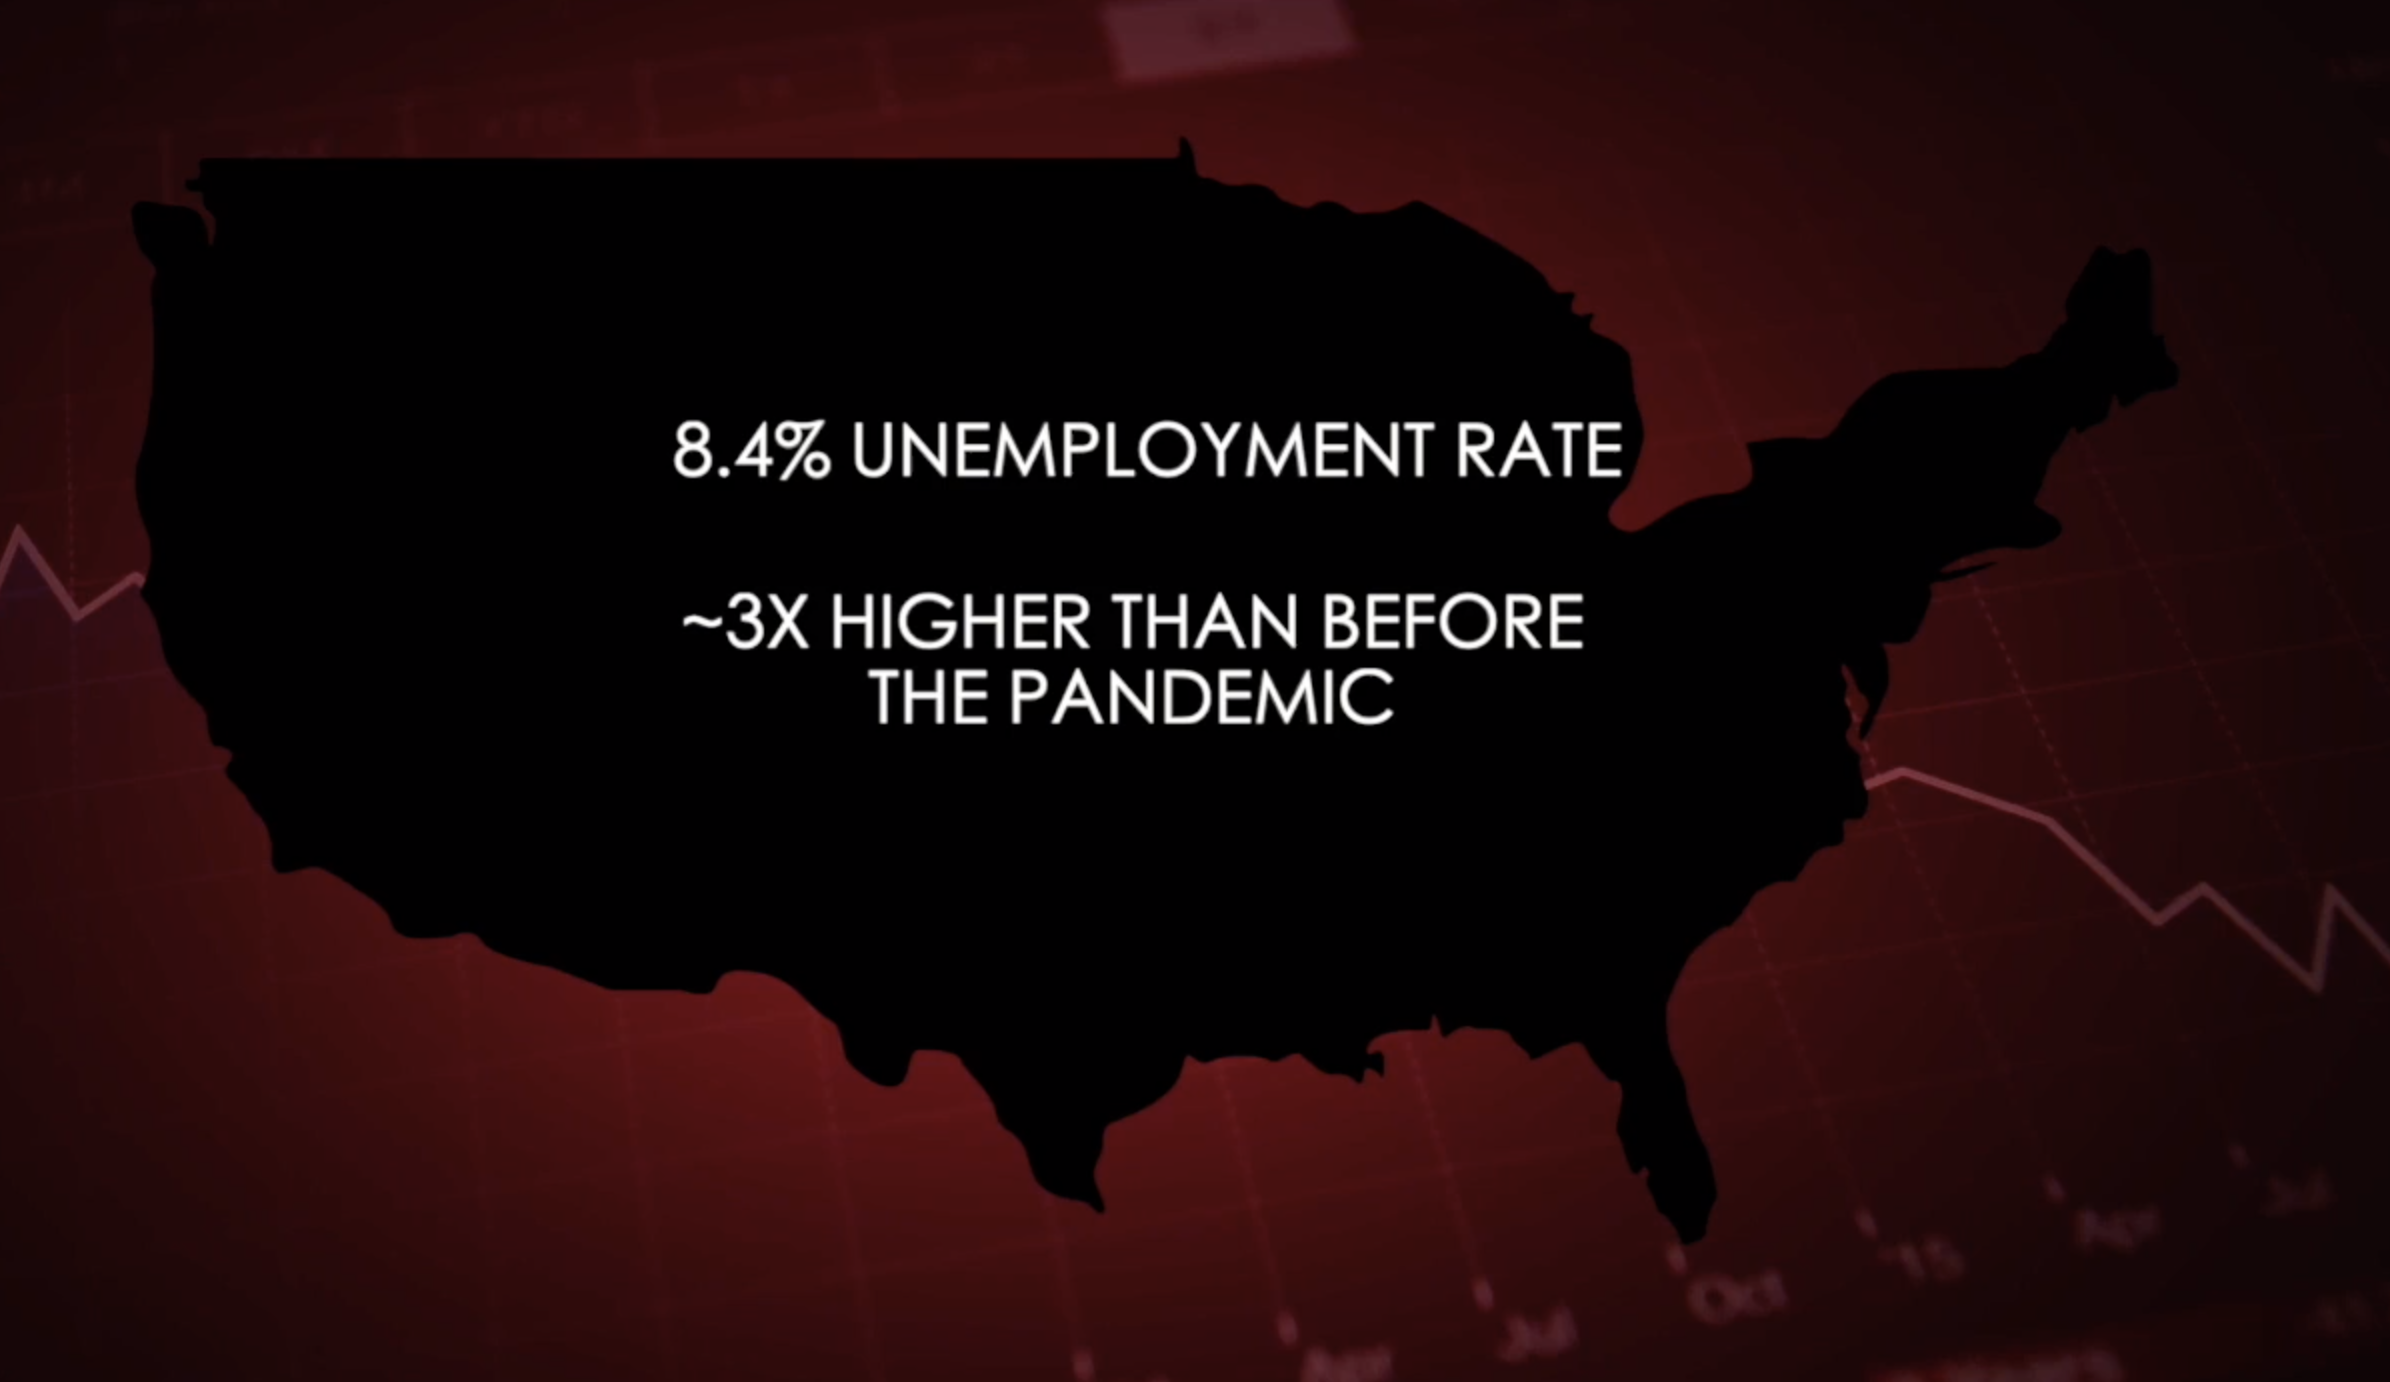 Companies offer free resources to millions of people still unemployed